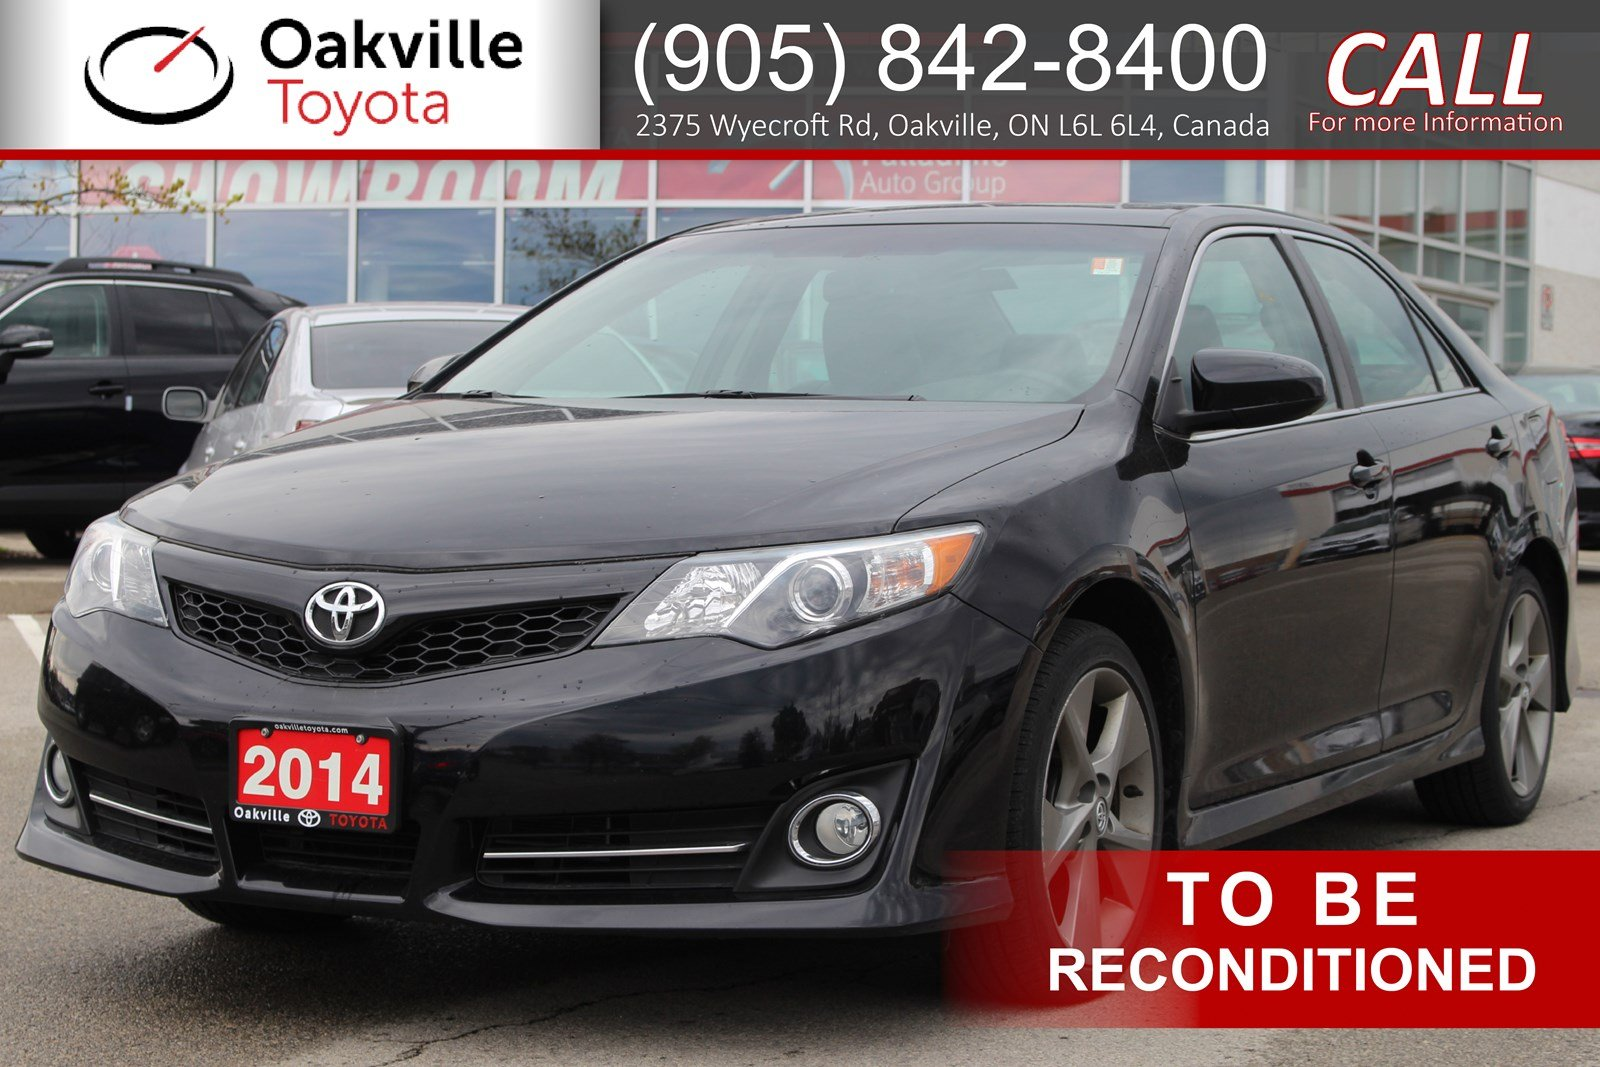 Pre-Owned 2014 Toyota Camry SE with Clean Carfax and Single Owner